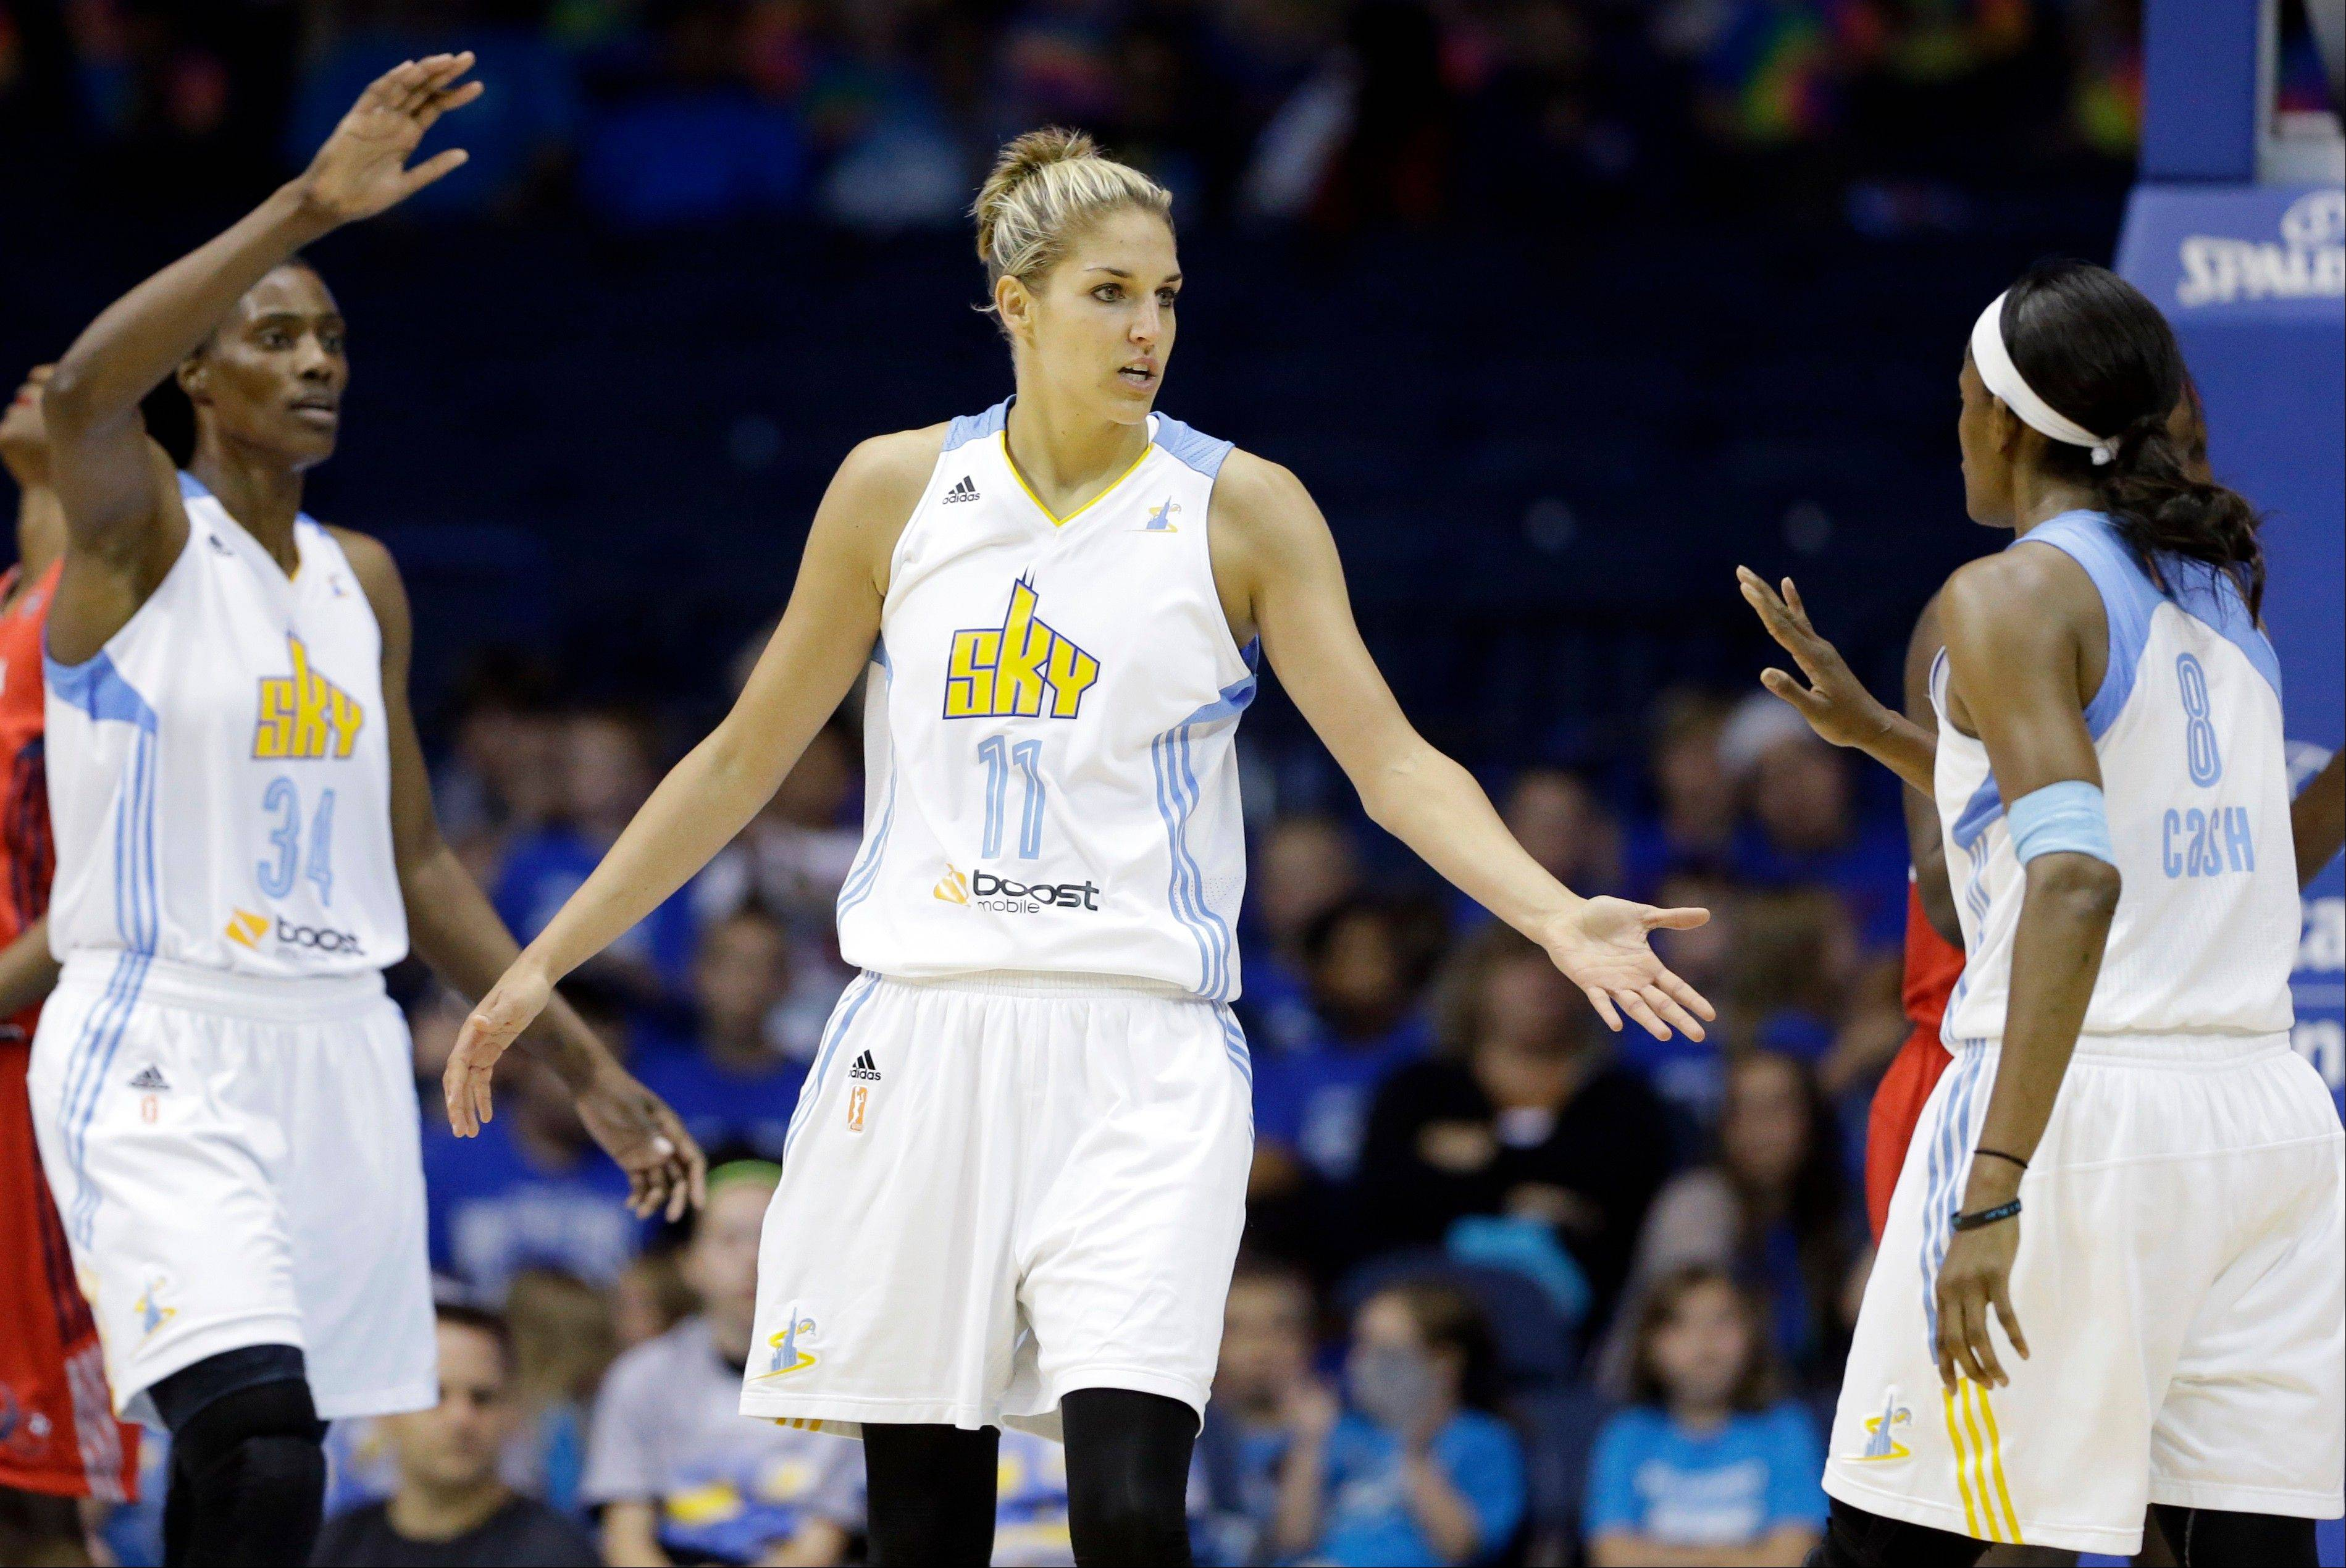 Chicago Sky forward Elena Delle Donne, center, credits forward Swin Cash, right, with helping her adjust to the WNBA. Delle Donne and Sylvia Fowles, left, have led the Sky to first place in the Eastern Conference.